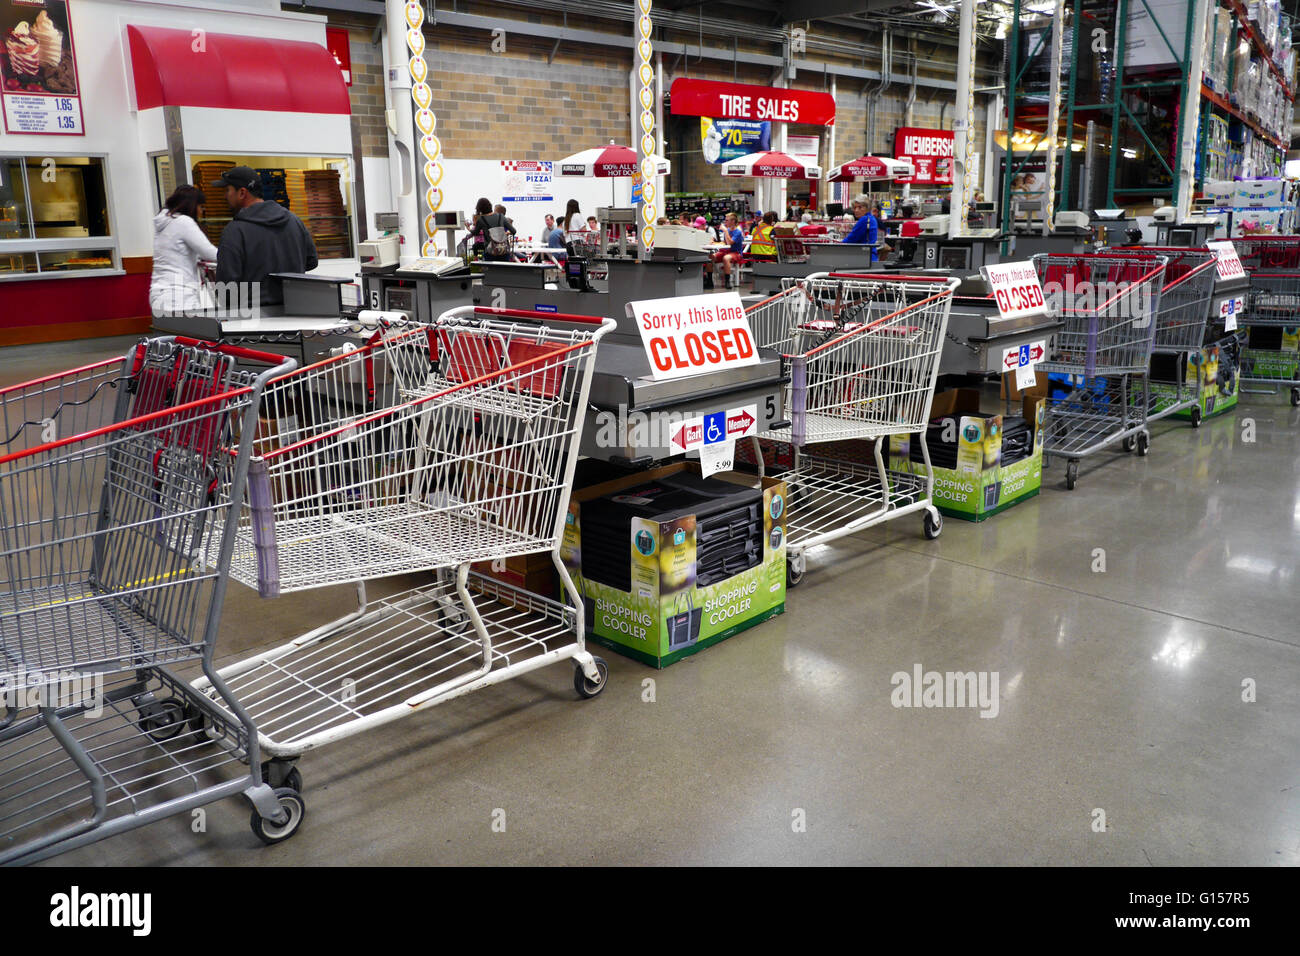 """Multiple closed and blocked aisles with """"Sorry, this lane CLOSED"""" signs on them at a busy warehouse store. Stock Photo"""